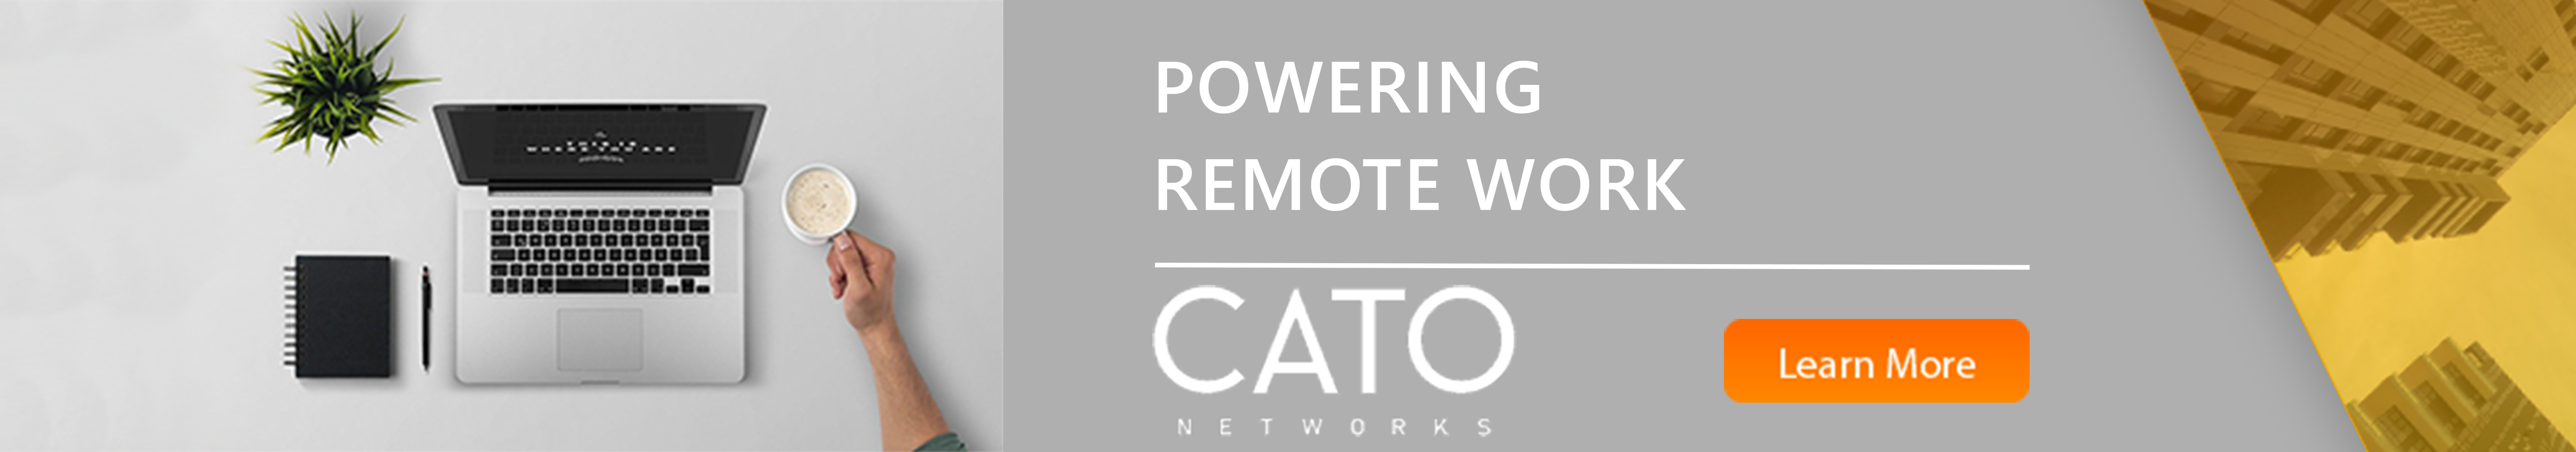 CATO Work from home solutions banner